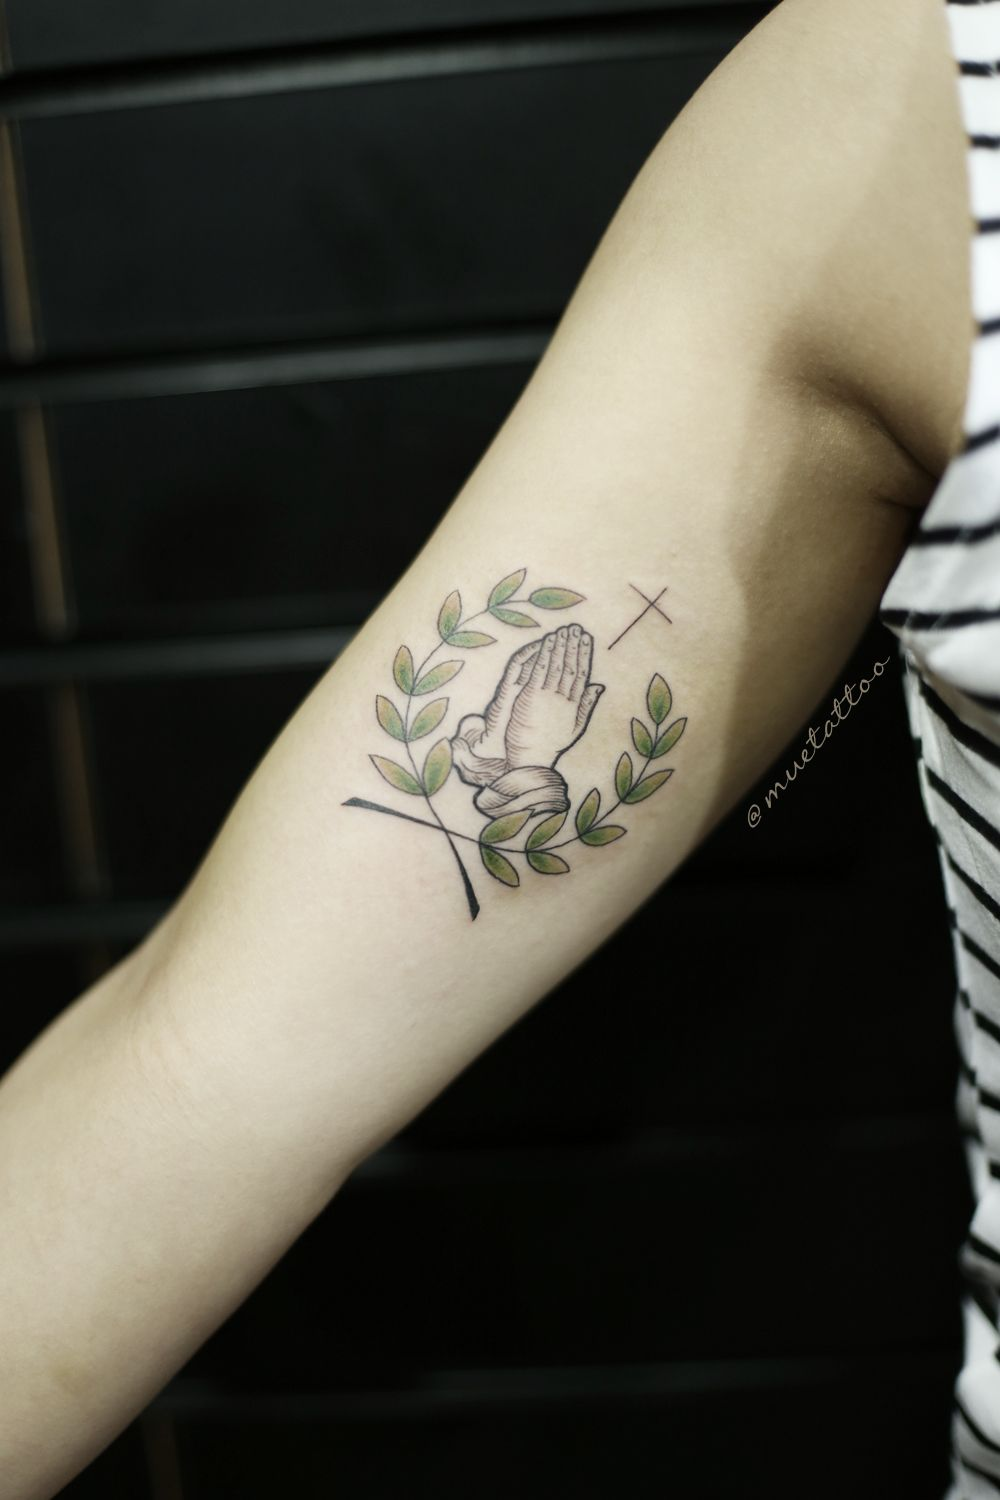 Small Tattoo Size: Pray Hands, Laurel, Cross, Small Size Woman Tattoo